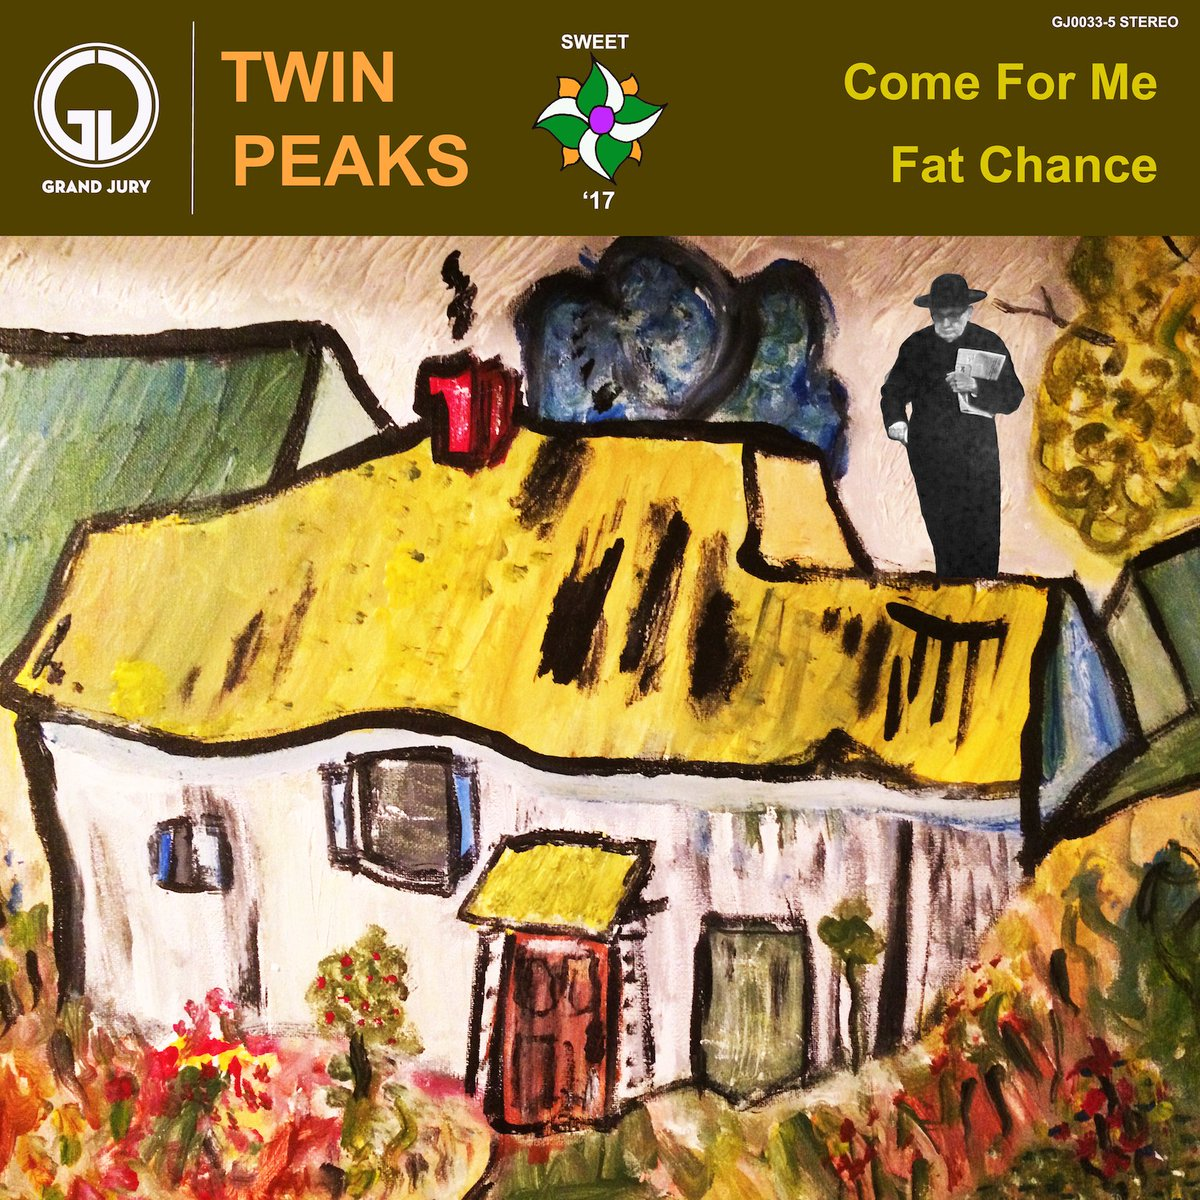 Twin peaks on twitter greetings people of earth the new sweet twin peaks on twitter greetings people of earth the new sweet 17 singles are out listen to come for me and fat chance httpstq5yzkypyue m4hsunfo Choice Image